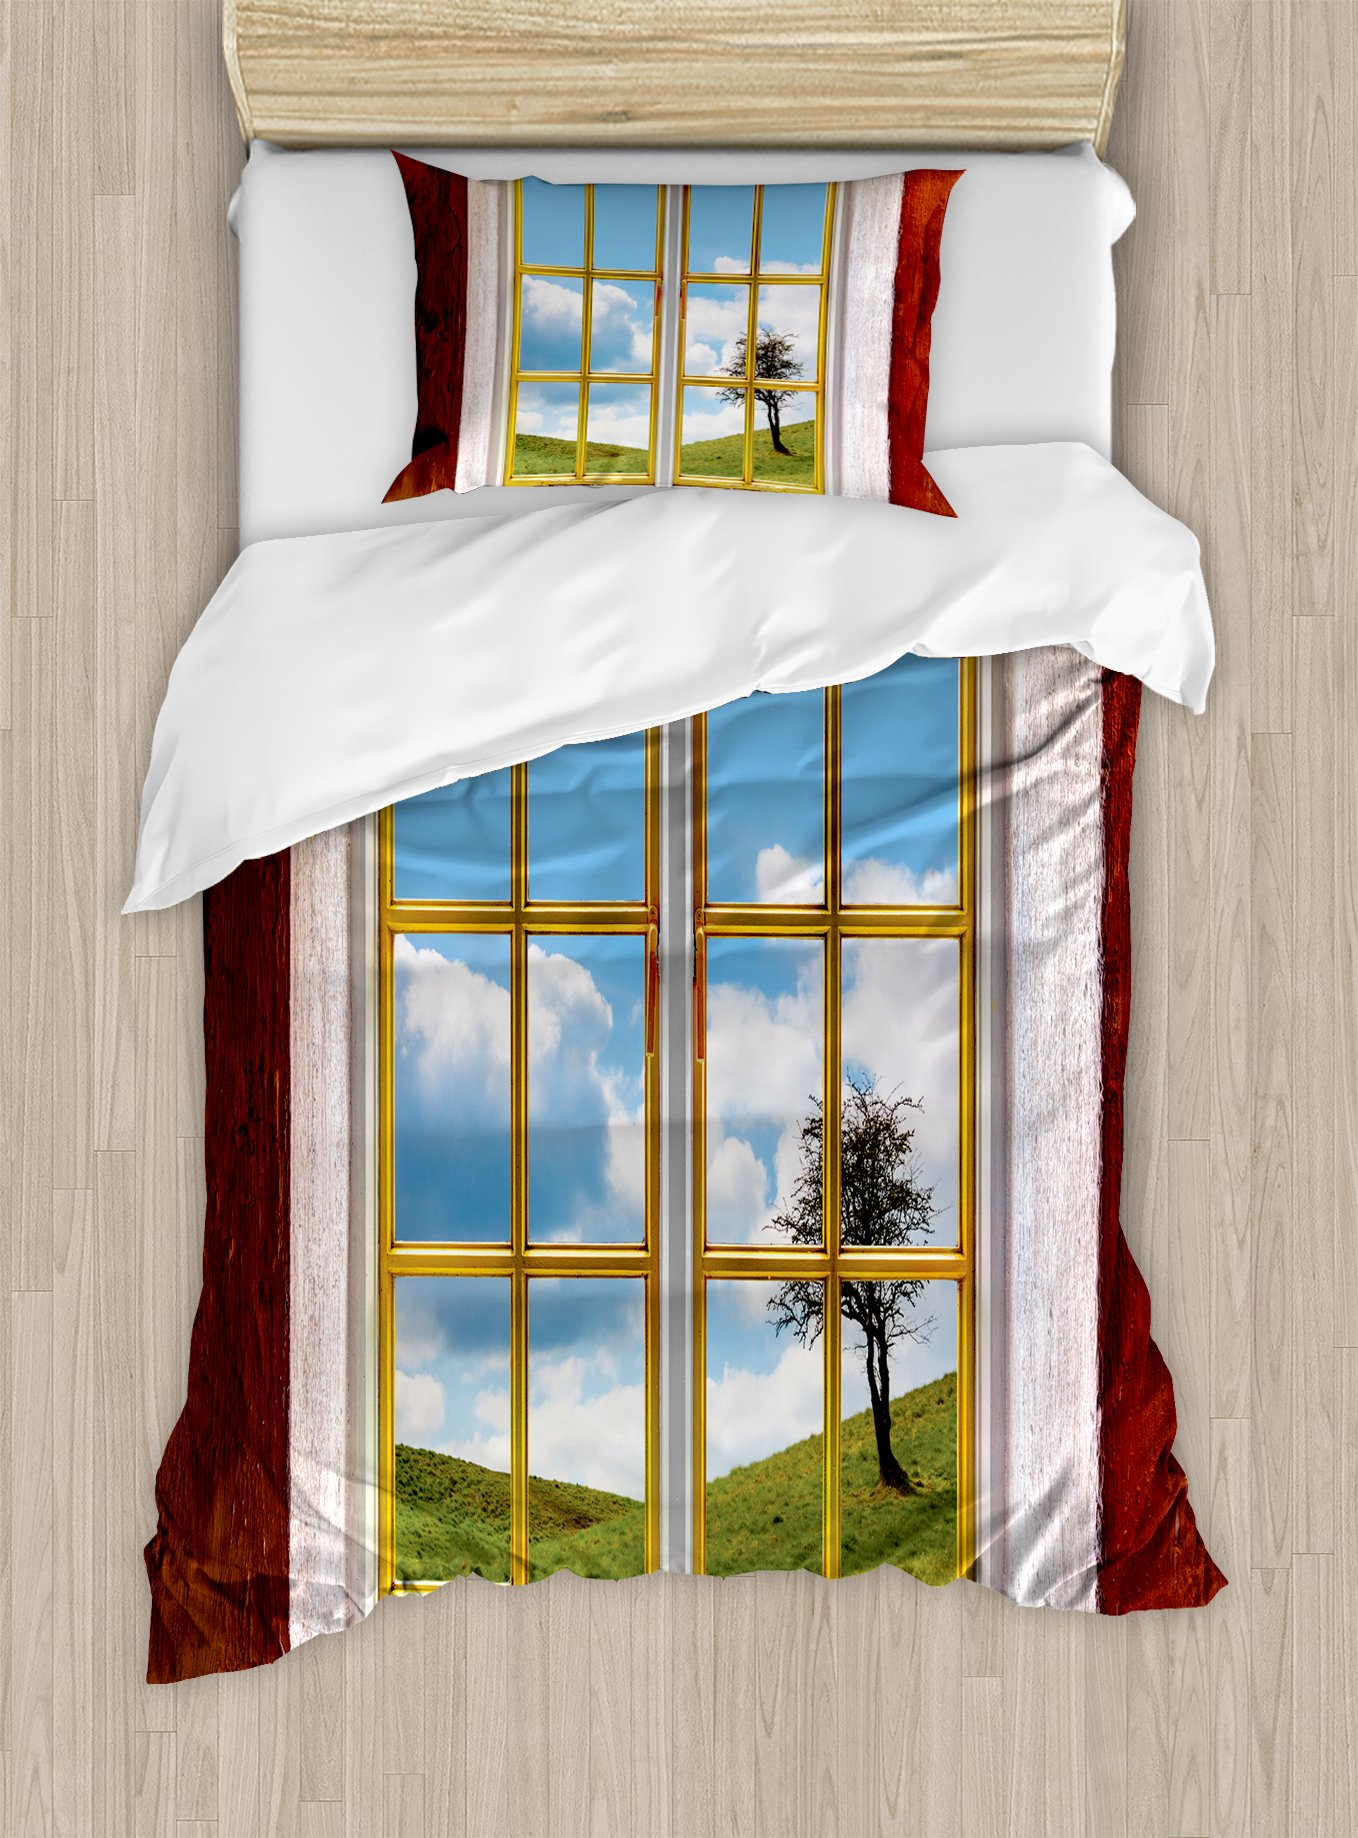 Ambesonne Rustic Duvet Cover Set Twin Size, Meadow Grass with Tree Through Window Countryside Rural Cottage Flourishing Image, Decorative 2 Piece Bedding Set with 1 Pillow Sham, Multicolor